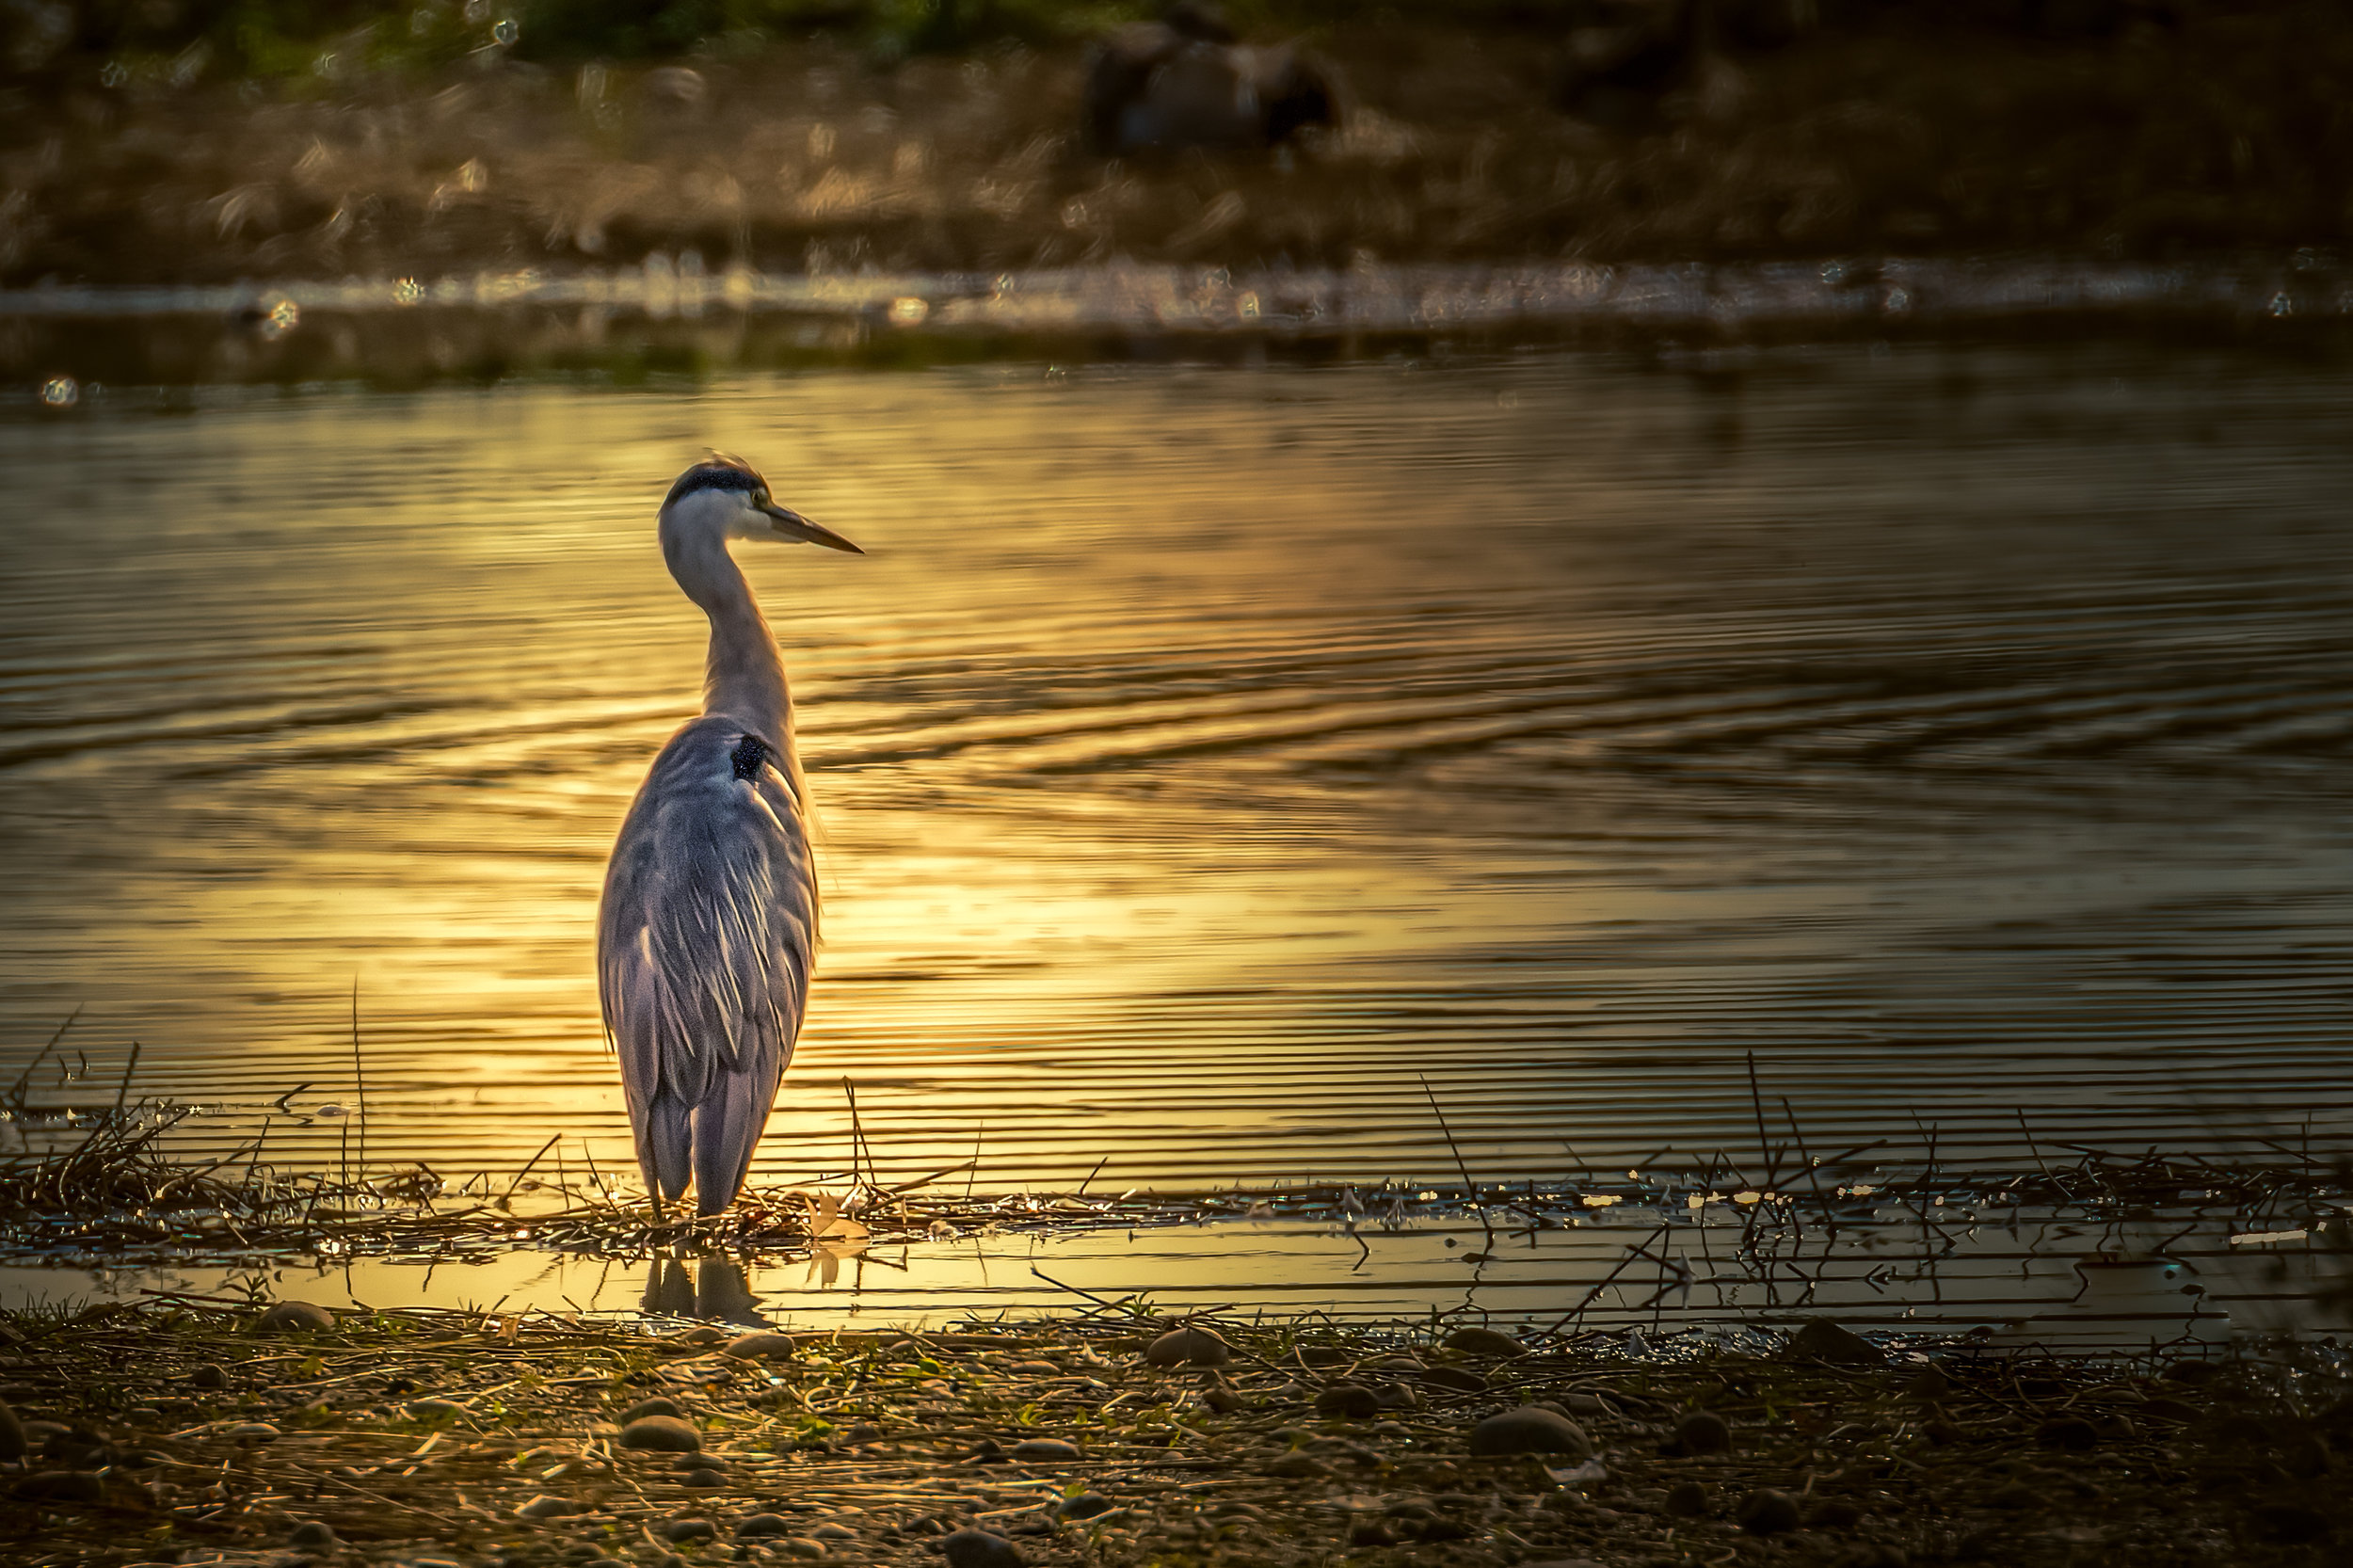 Heron at sundown